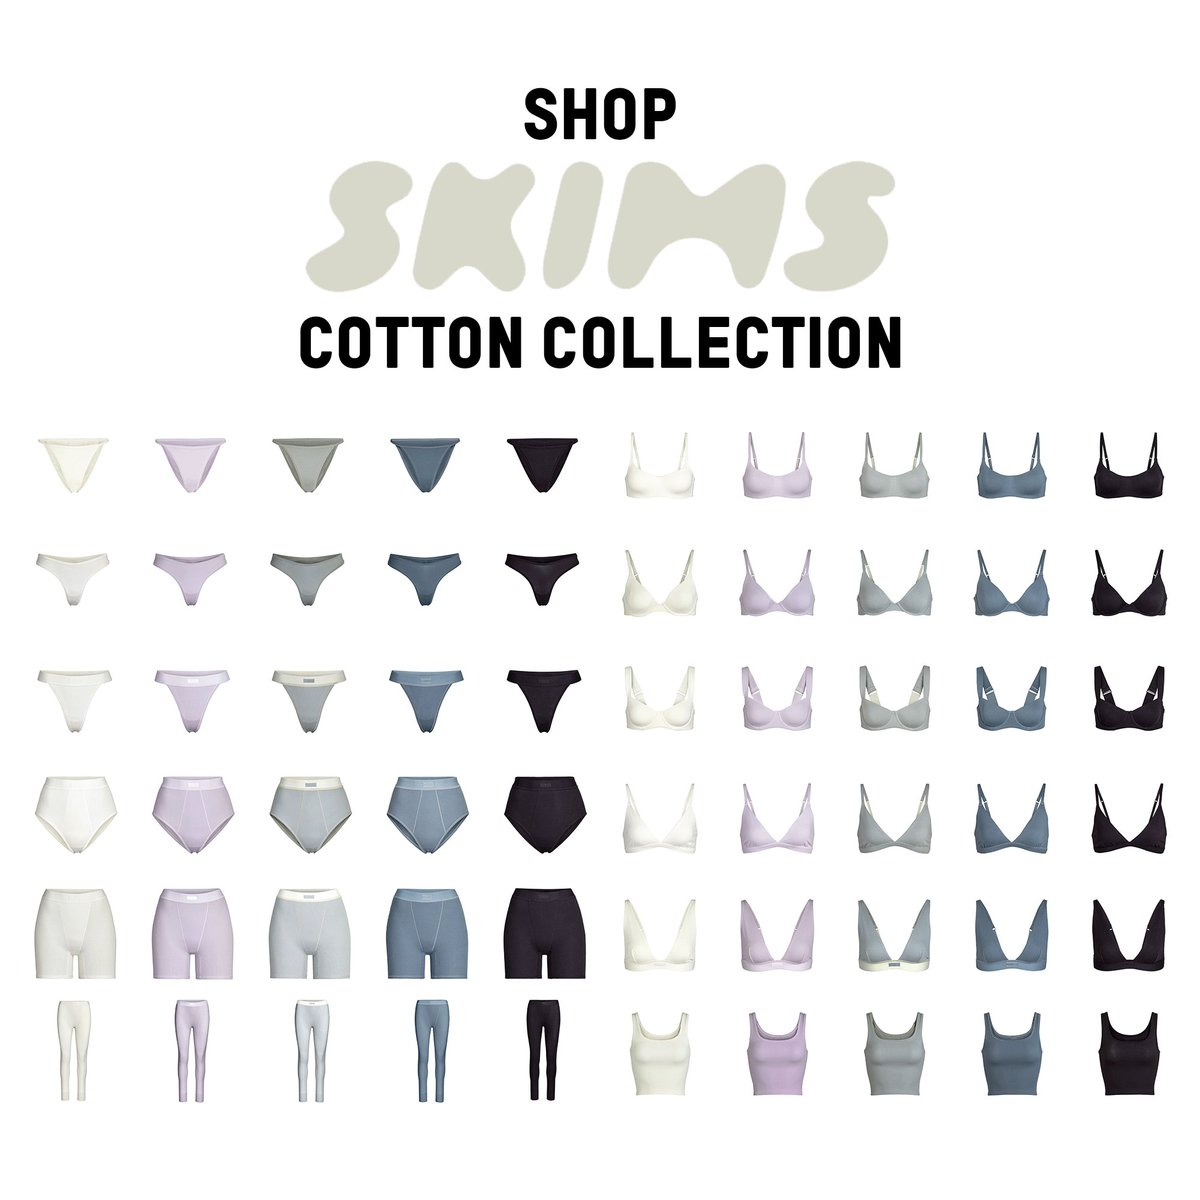 Shop the @skims Cotton Collection + 3 New Thermal Legging Colors now only at http://SKIMS.COM